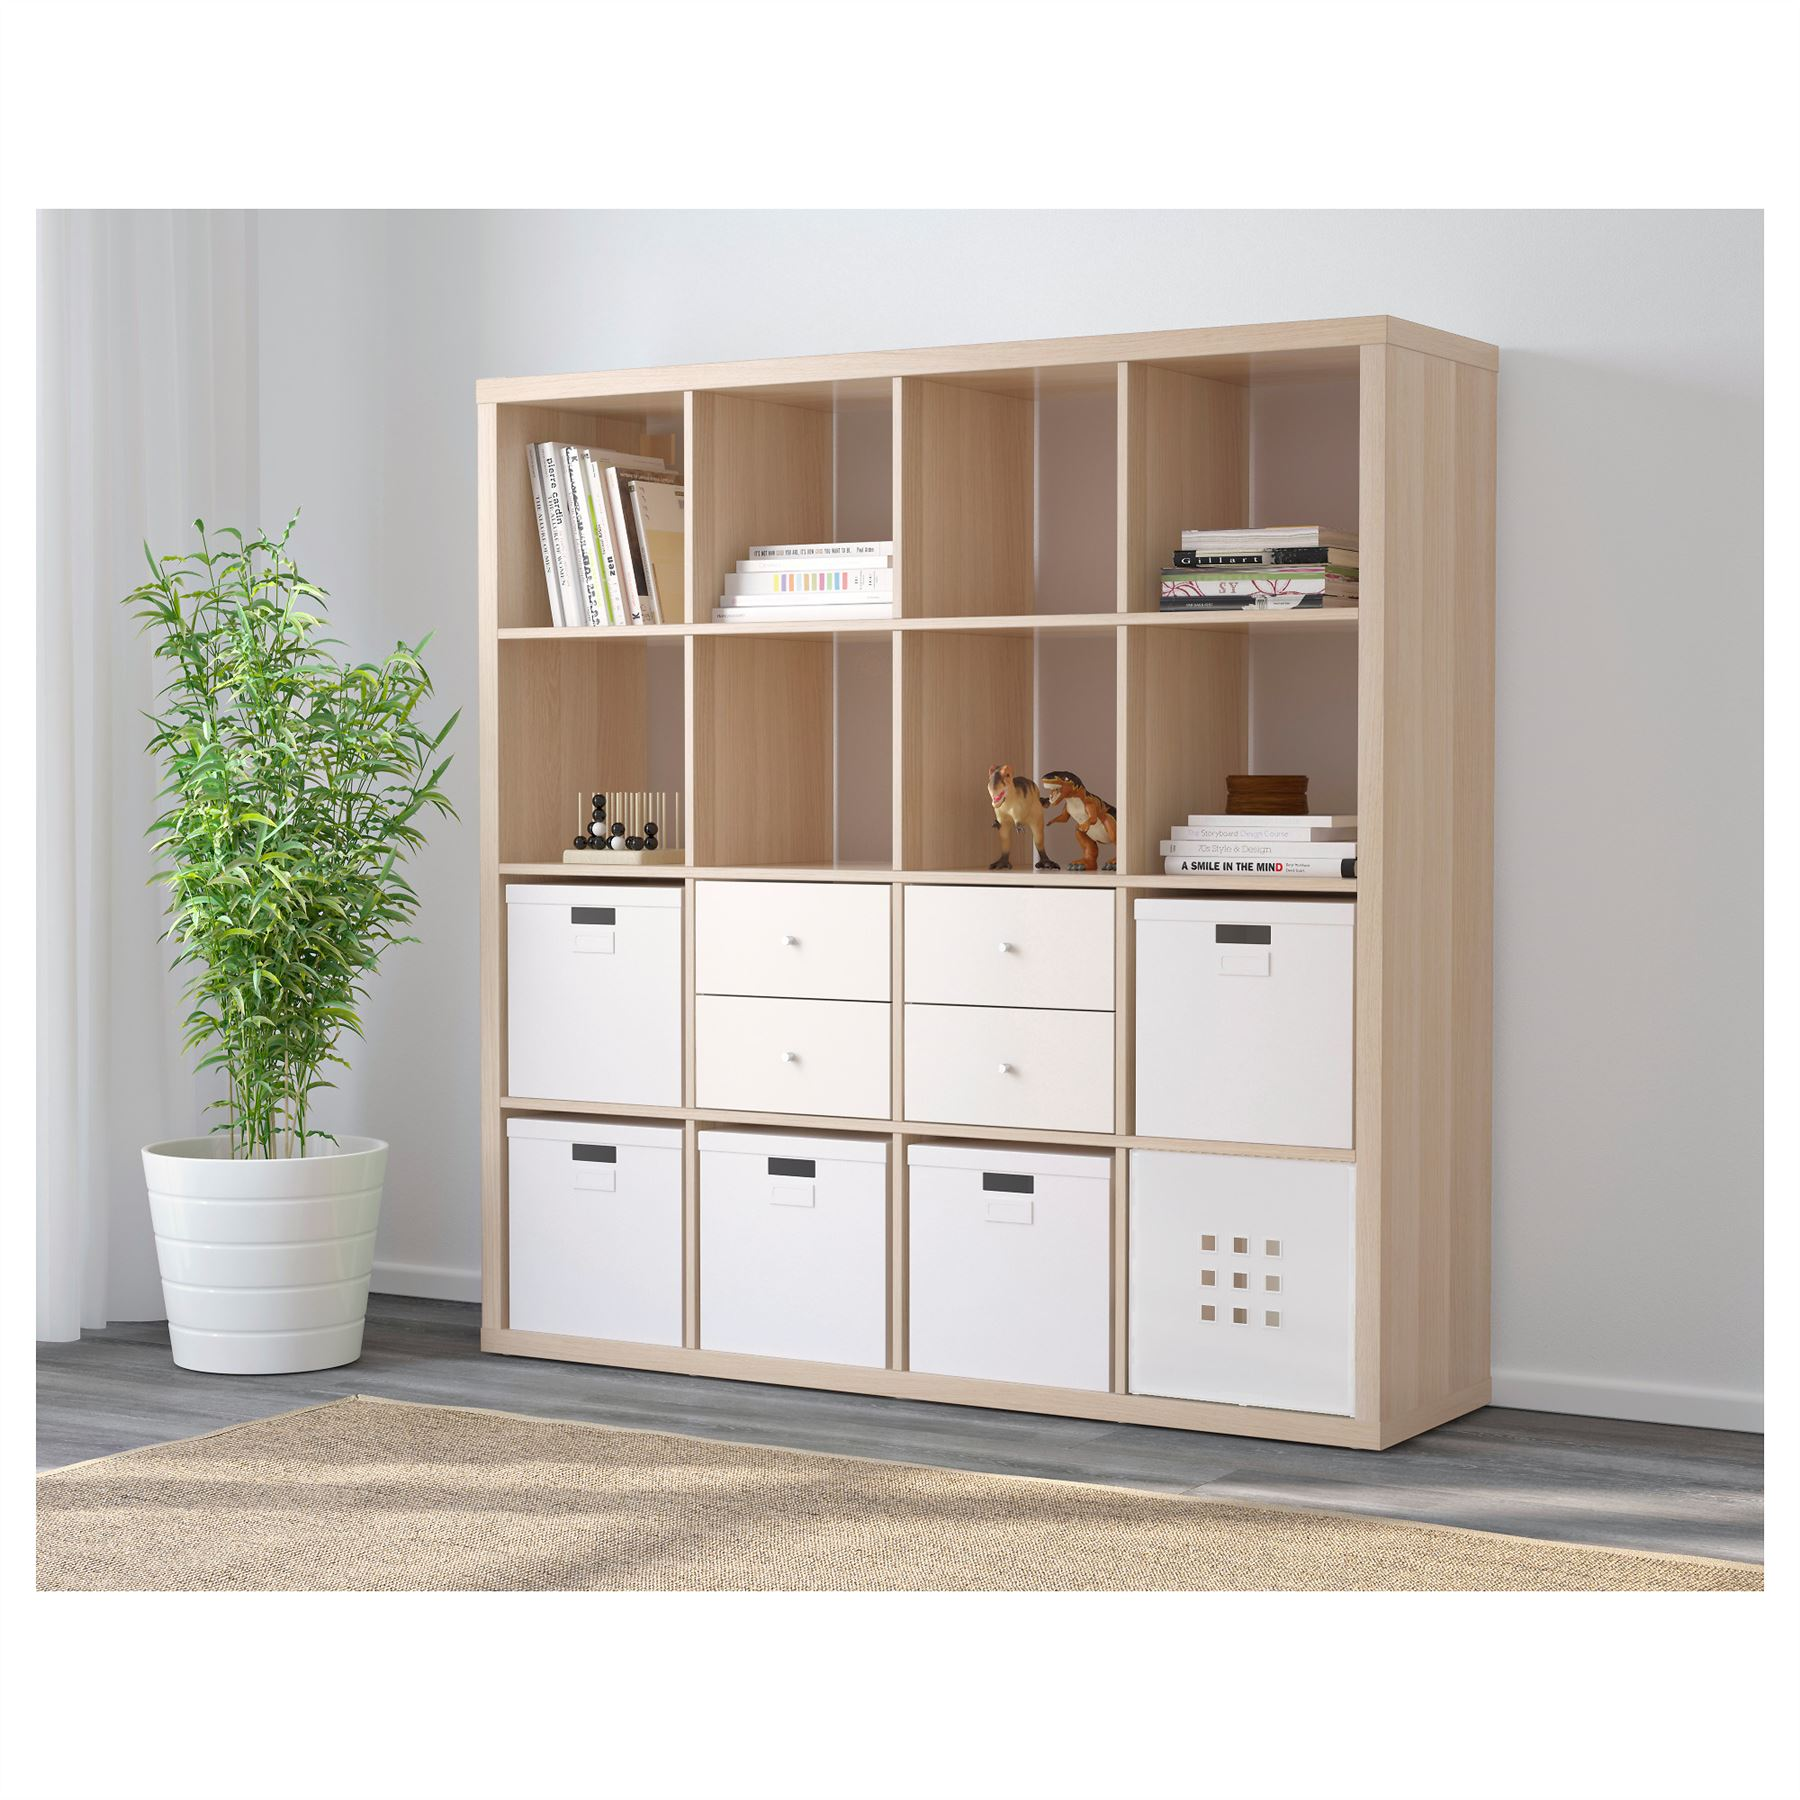 Aufbewahrungsbox Ikea Expedit Ikea Kallax 16 Cube Storage Bookcase Square Shelving Unit